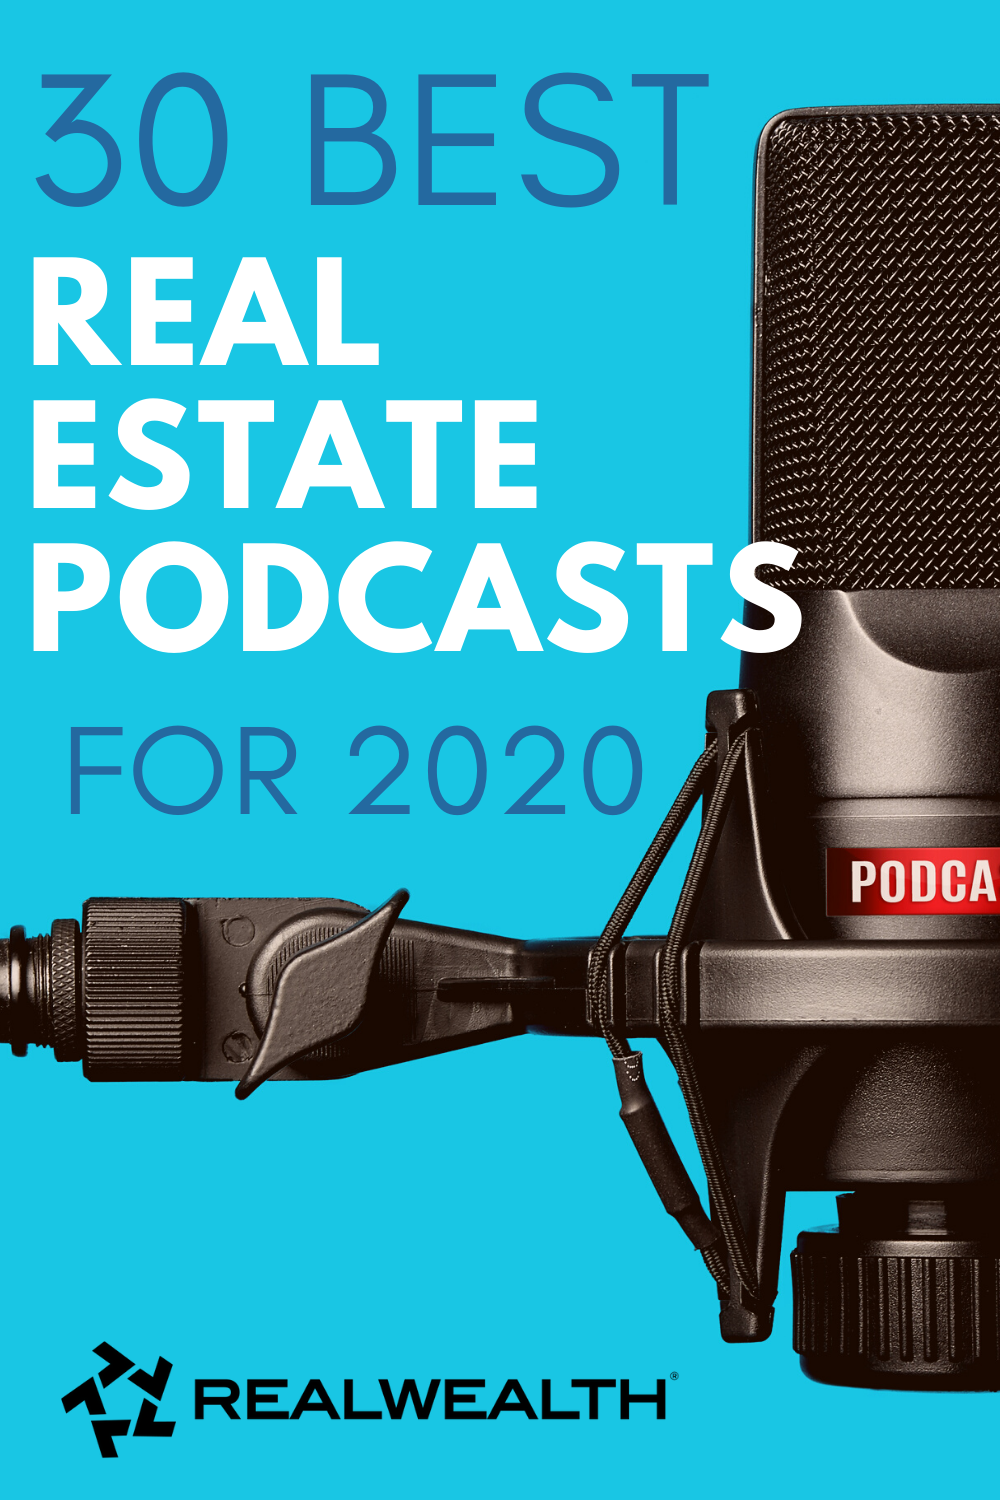 30 Of The Best Real Estate Podcasts For 2020 Free Investor Guide Real Estate Coaching Real Estate Buying Rental Property Investment